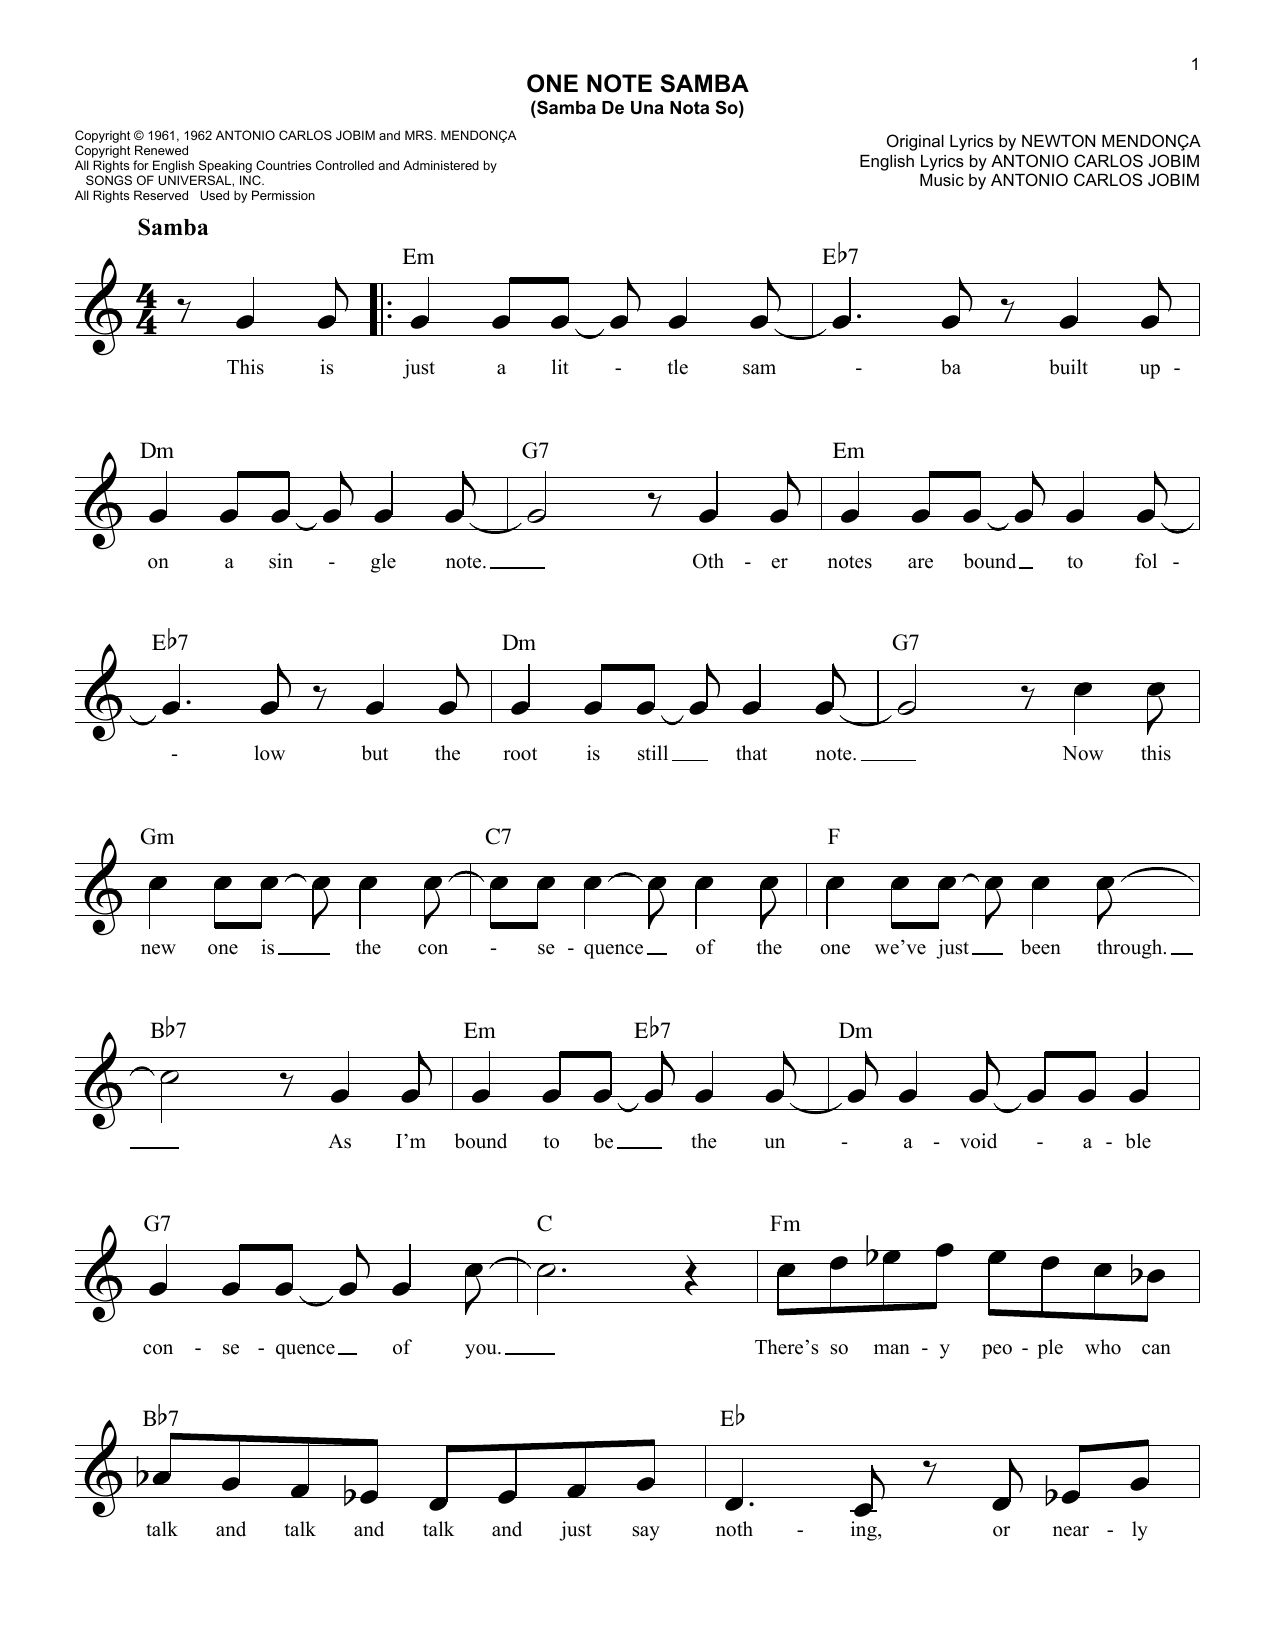 One Note Samba (Samba De Uma Nota So) Sheet Music